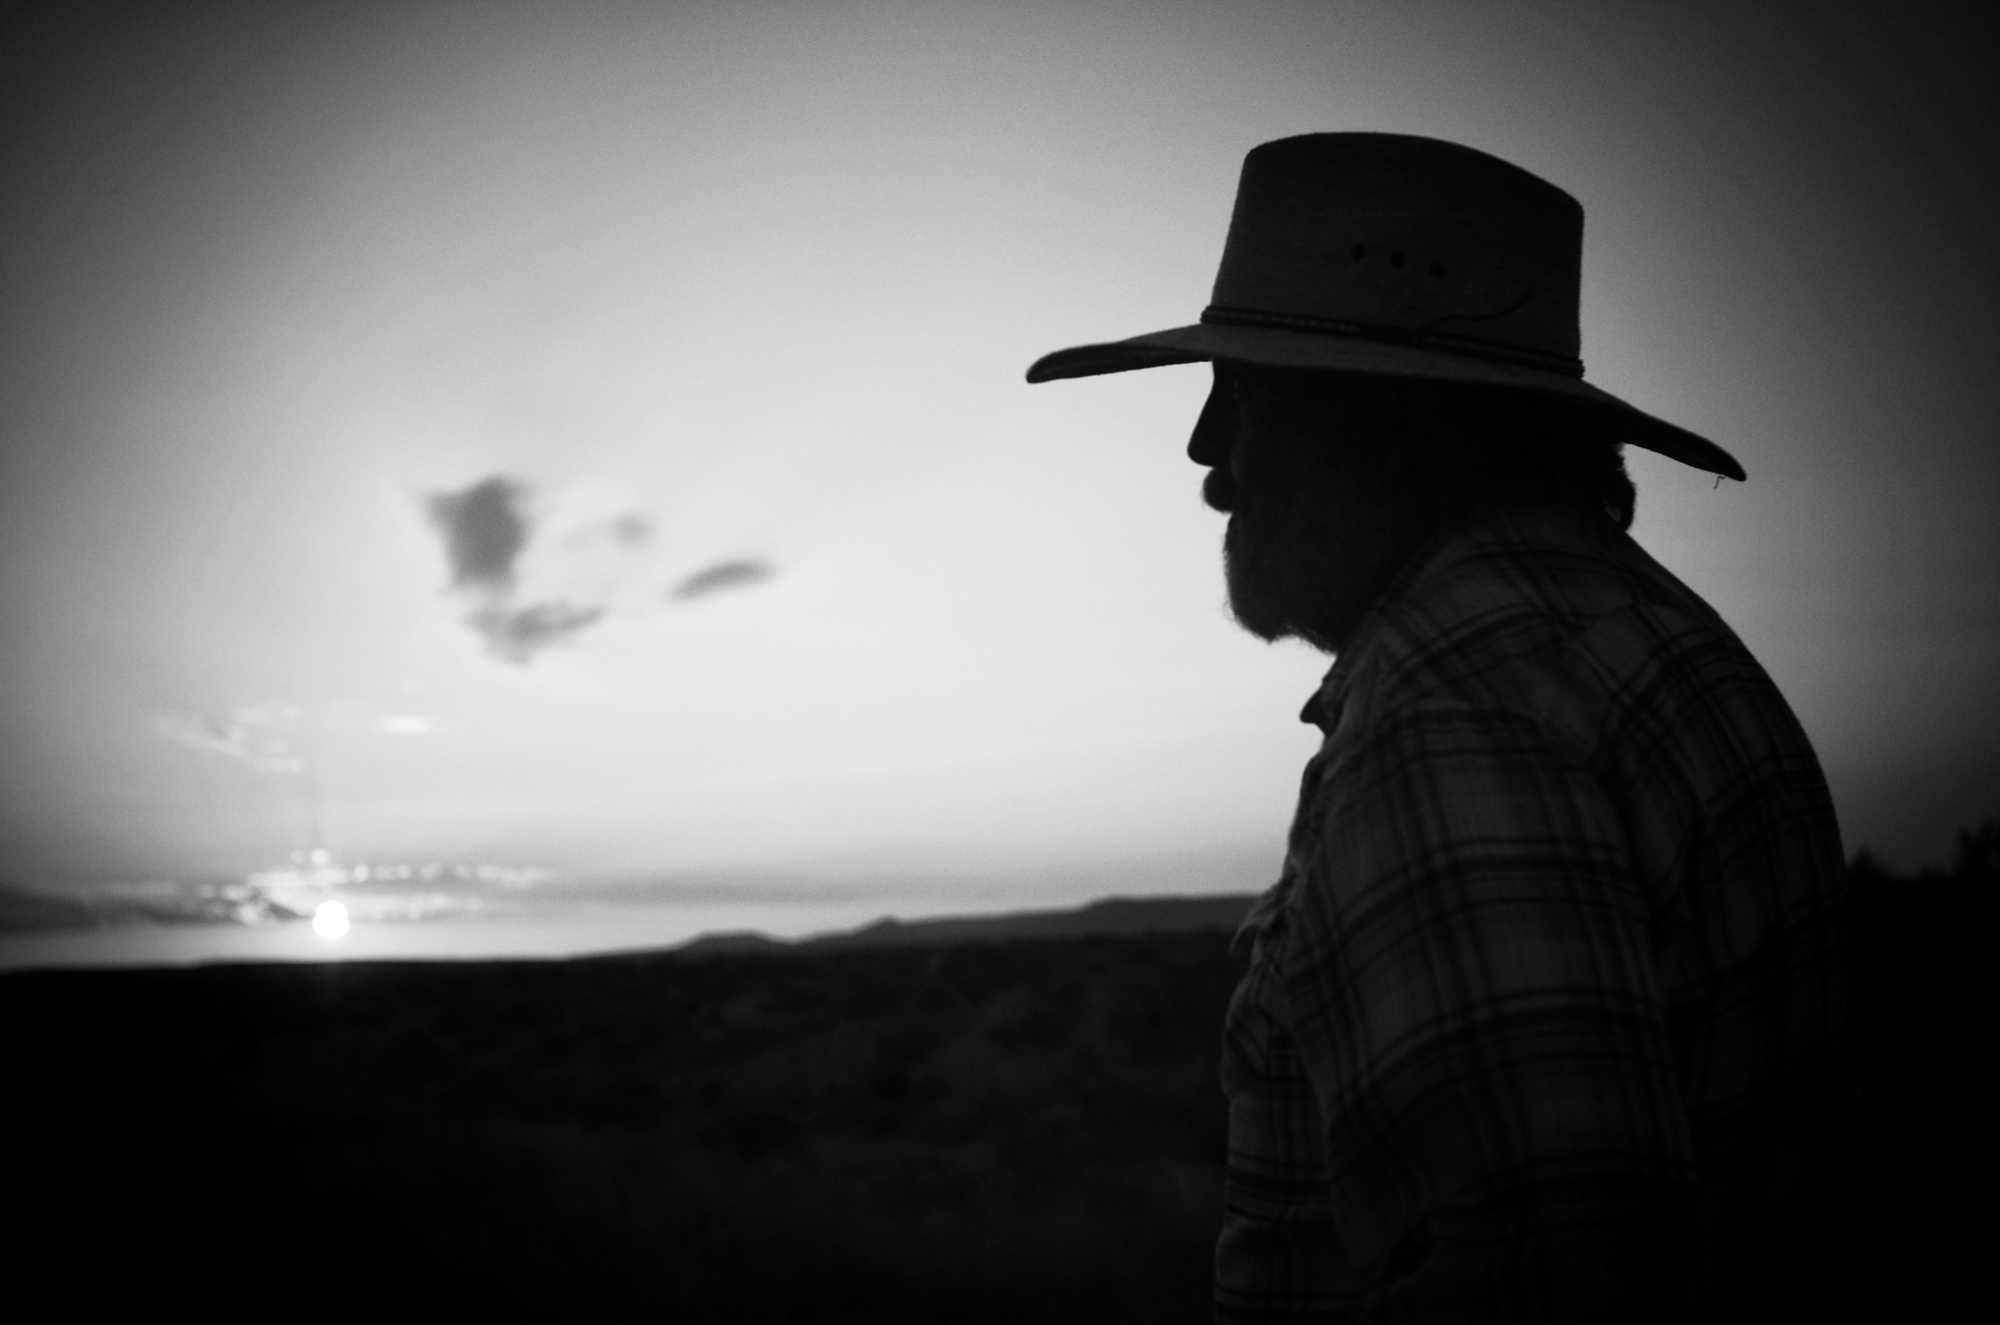 """James Springs is among the 43 ranchers whose land was seized by eminent domain to construct the Trans-Pecos pipeline,""""This country is why a lot of us are here, and why we raised our families here. We have people buried here now. It's one of the last wide open spaces, what people call the final frontier, and it's true. . . If they build one [pipeline], there's an awful good chance there'll be another. Pretty soon they'll be down drilling."""""""